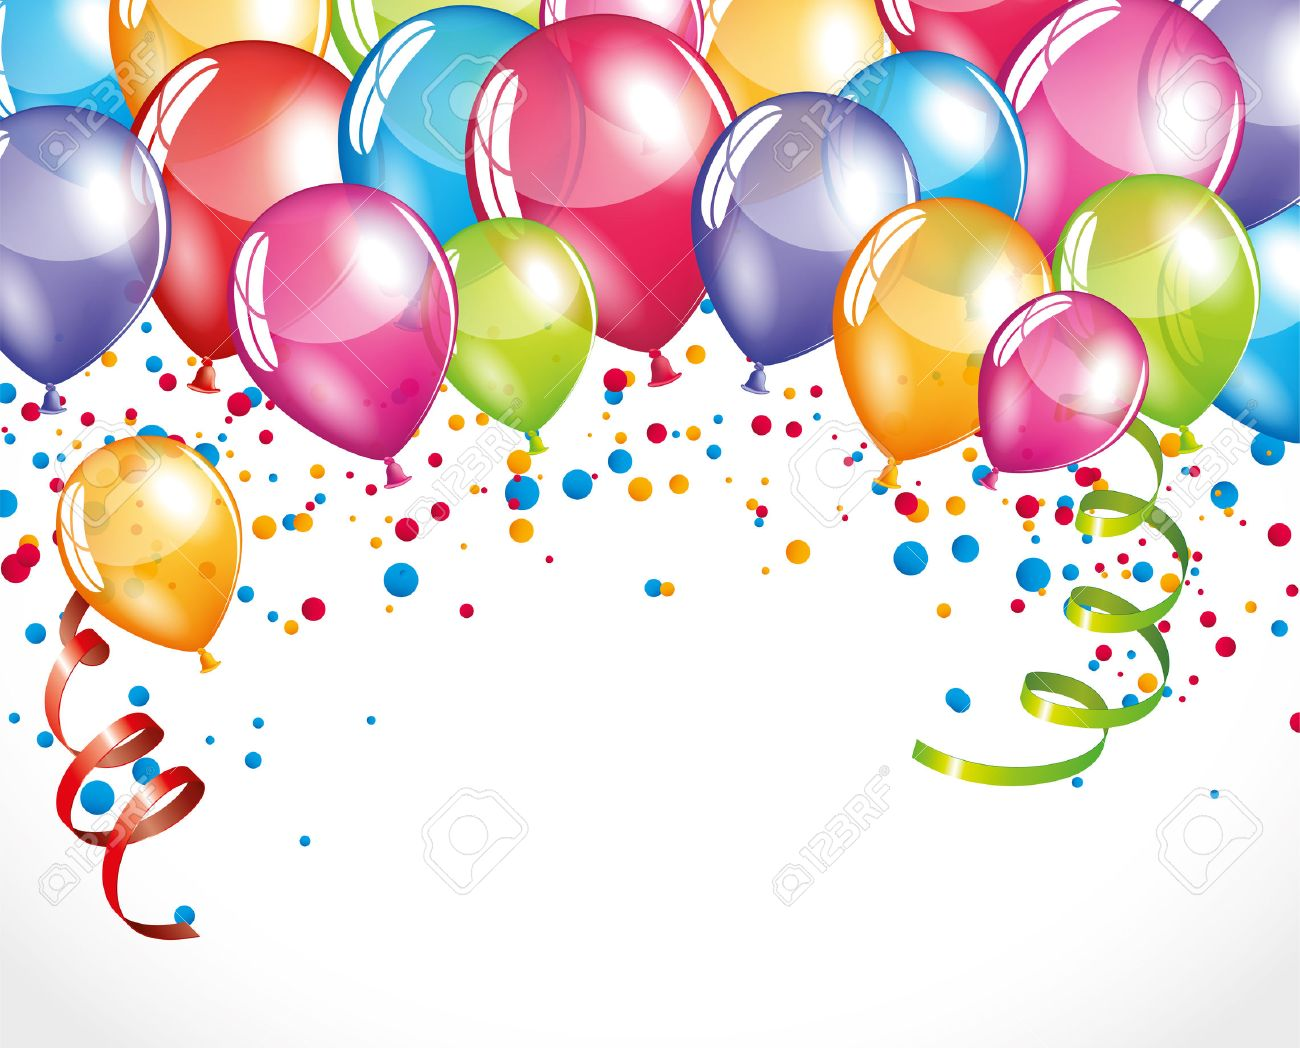 Balloons background - 44734637